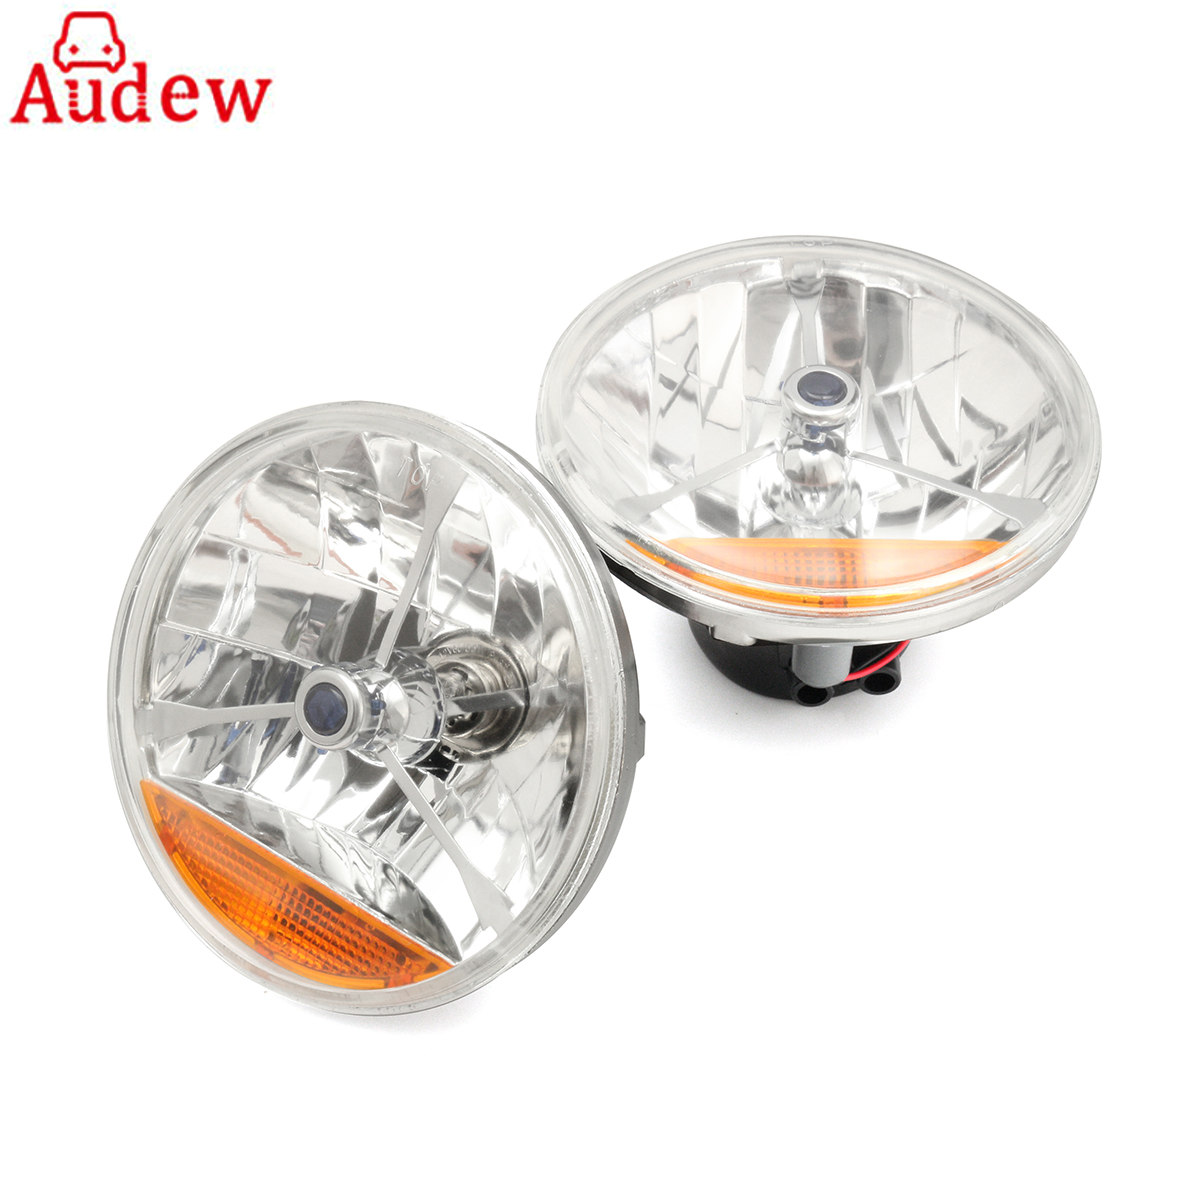 2Pcs 7 Inch H4 LED Car Headlight Fog Light  For Chevy/Ford Motorcycle  Daytime Running Lights Truck Light Led Side Turn Signal 2015 cheapest barebone mini pc computer nano j1800 with 3g sim function dual nics